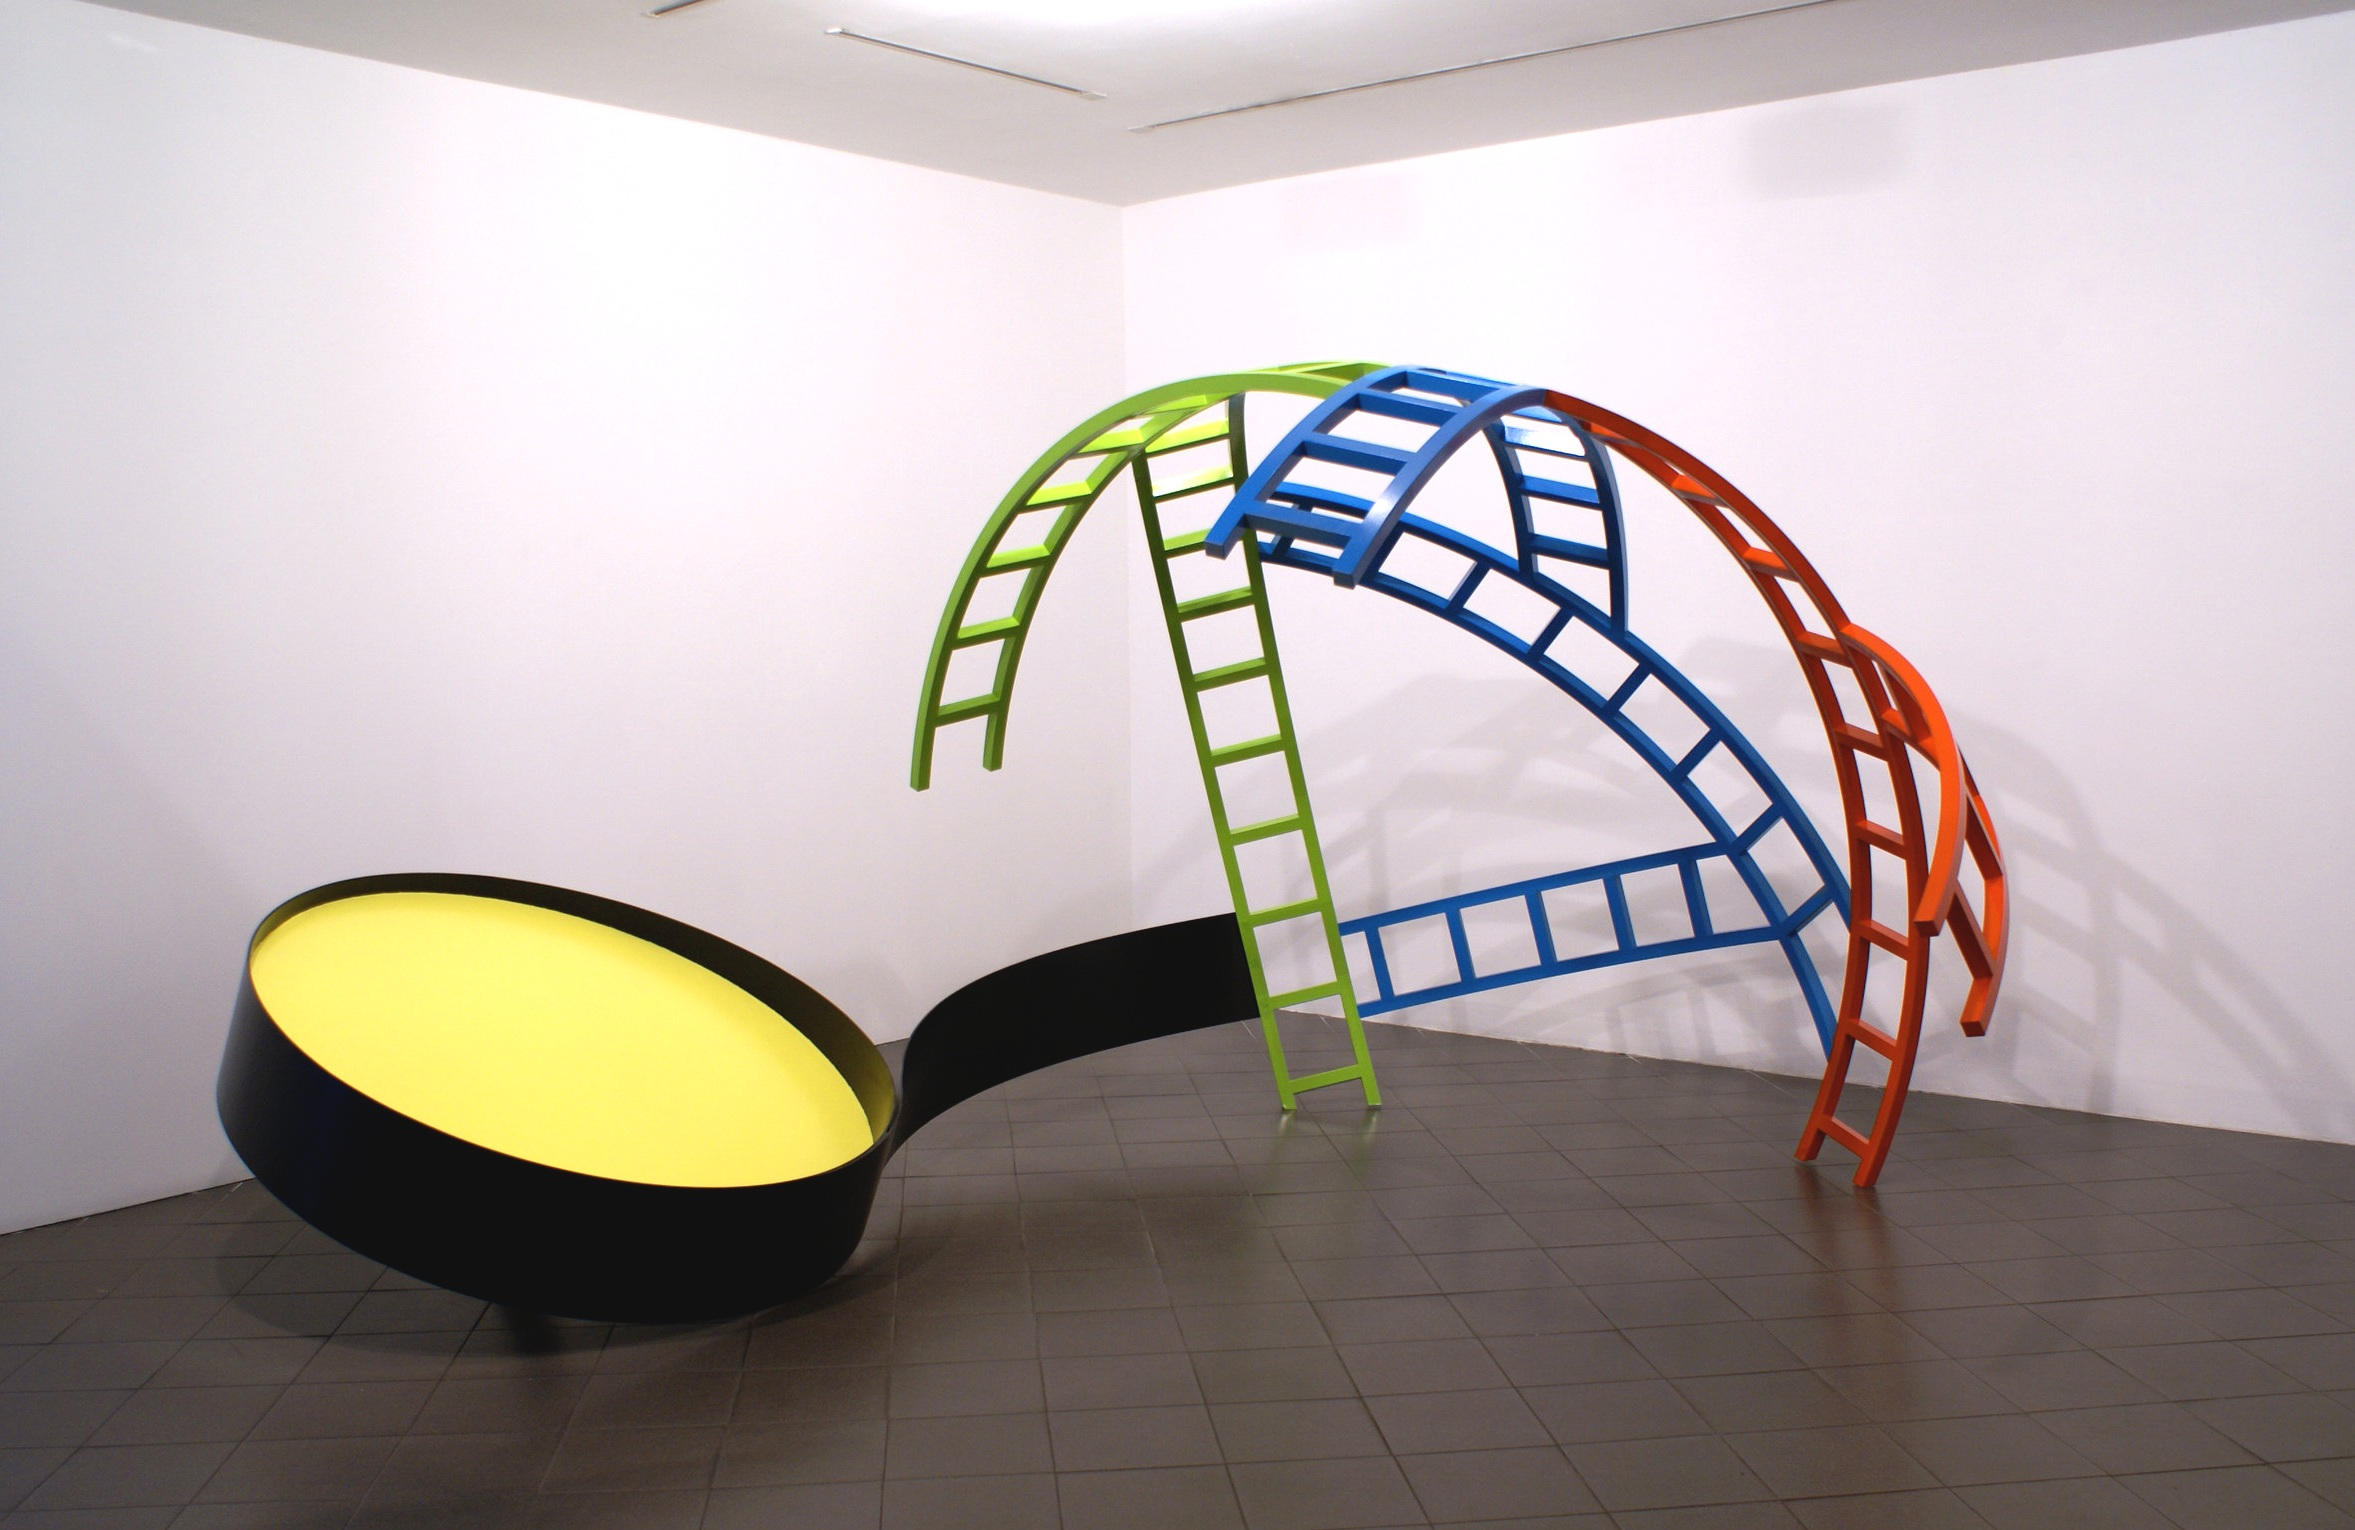 Yellow Disc, 2006/07, Ed 3, Steel, 200 x 435 x 272 cms (78.74 x 171.26 x 107 ins)